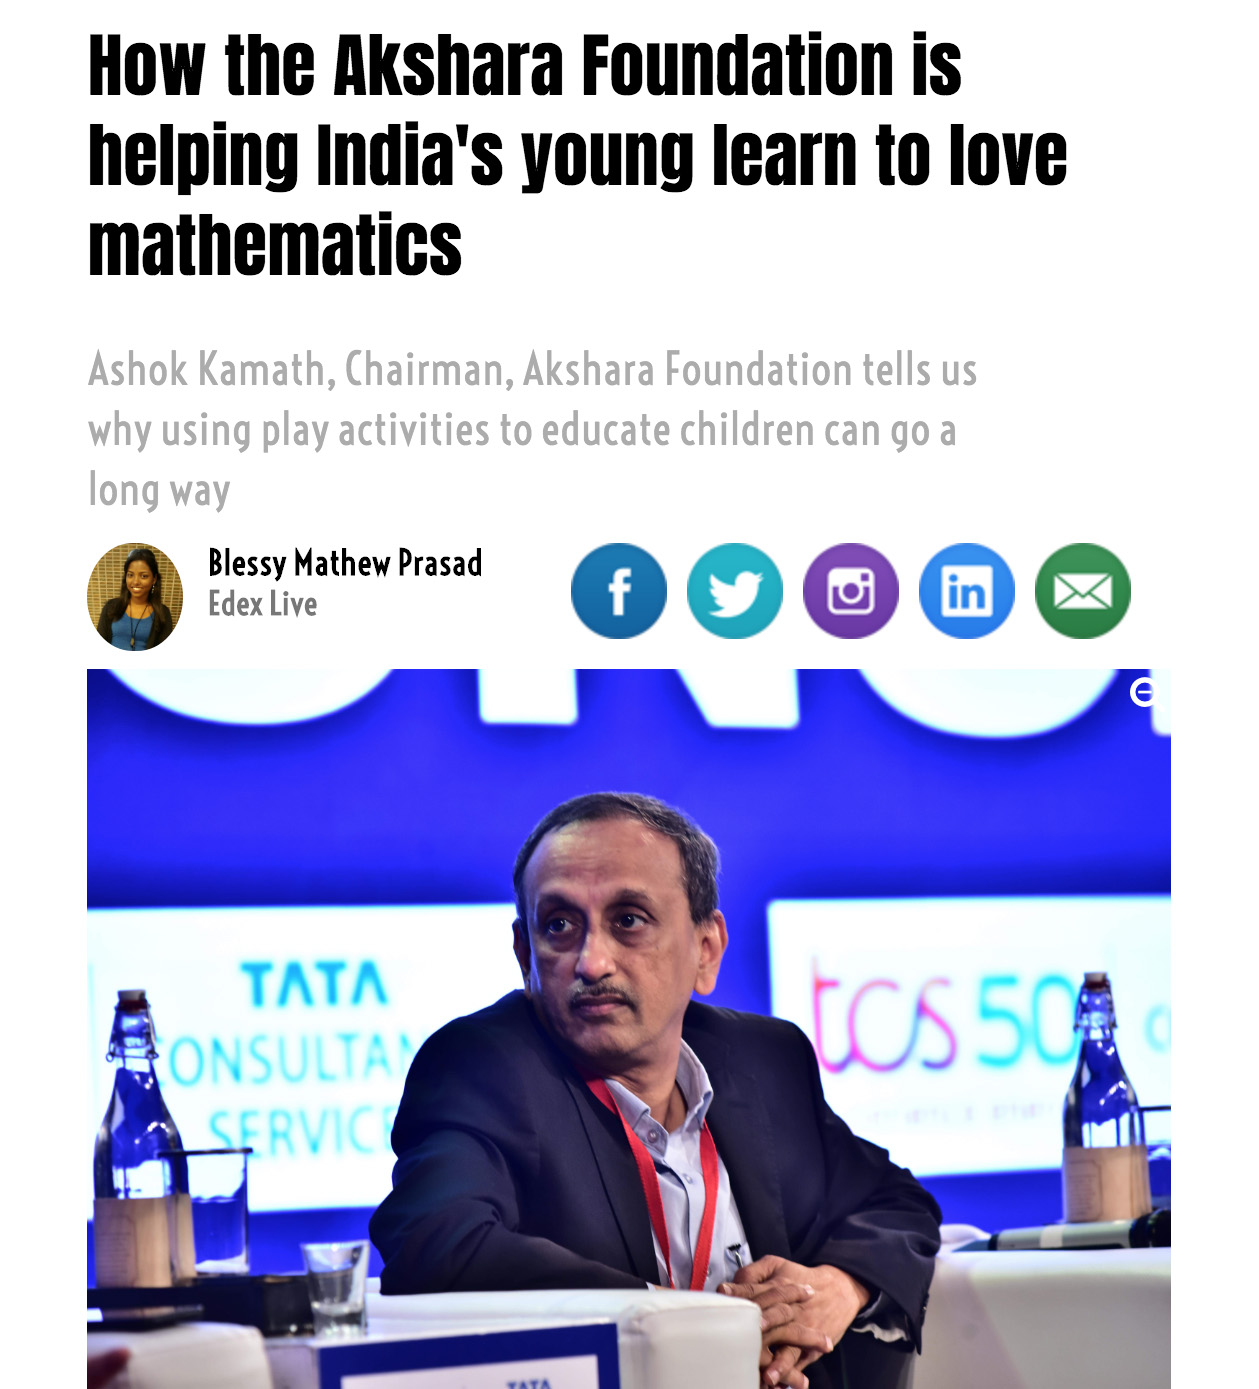 How the Akshara Foundation is helping India's young learn to love mathematics